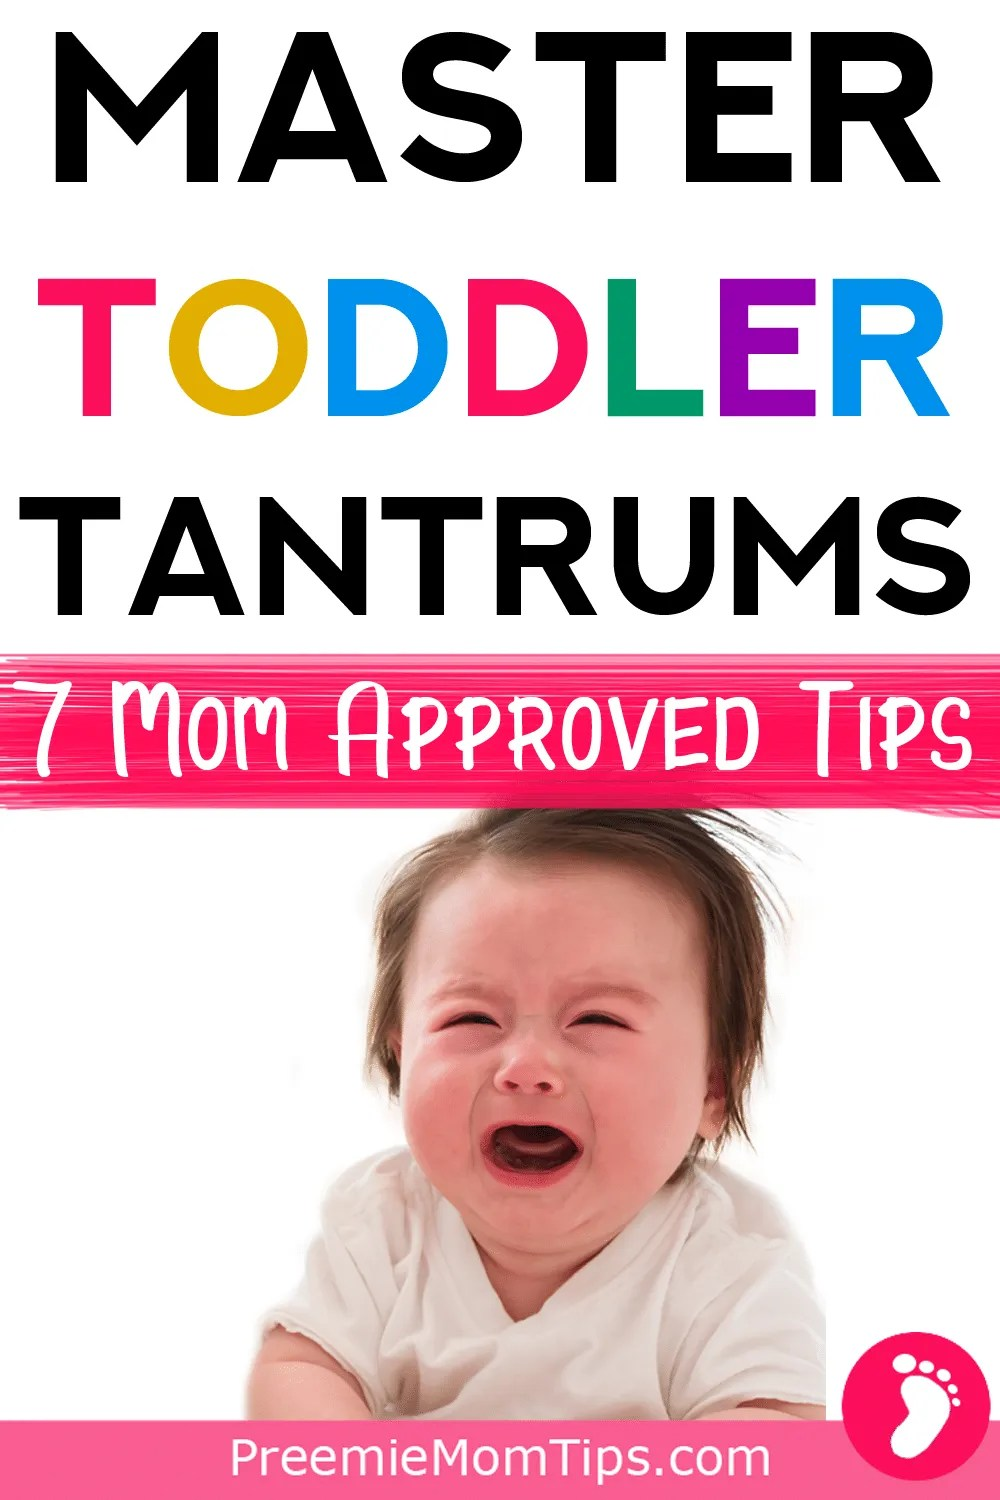 One of the challenges of early motherhood is tantrums. Toddler tantrums can be difficult to handle, but not impossible. Try these mom proven tips to handle toddler tantrums!